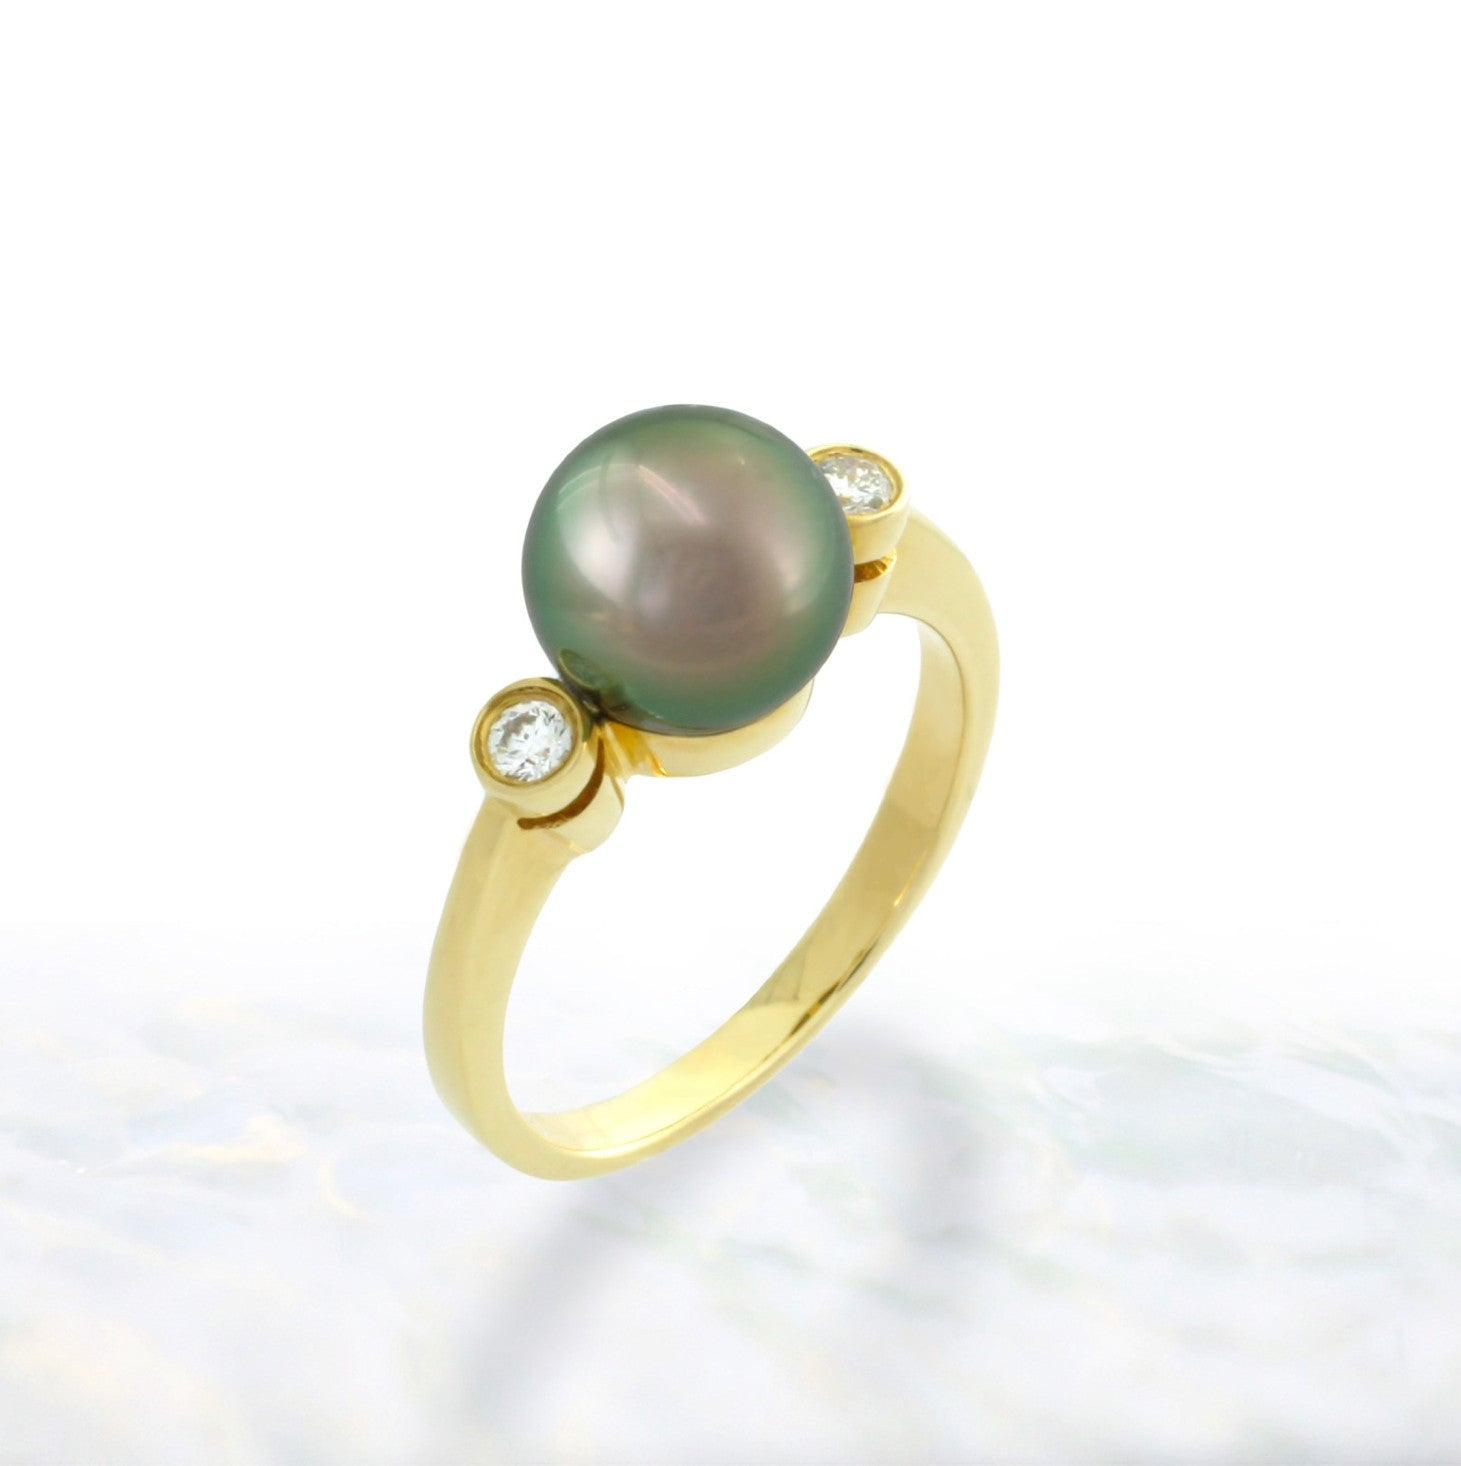 Tahitian pearl ring - 18K gold classic design - RGYDPE01016